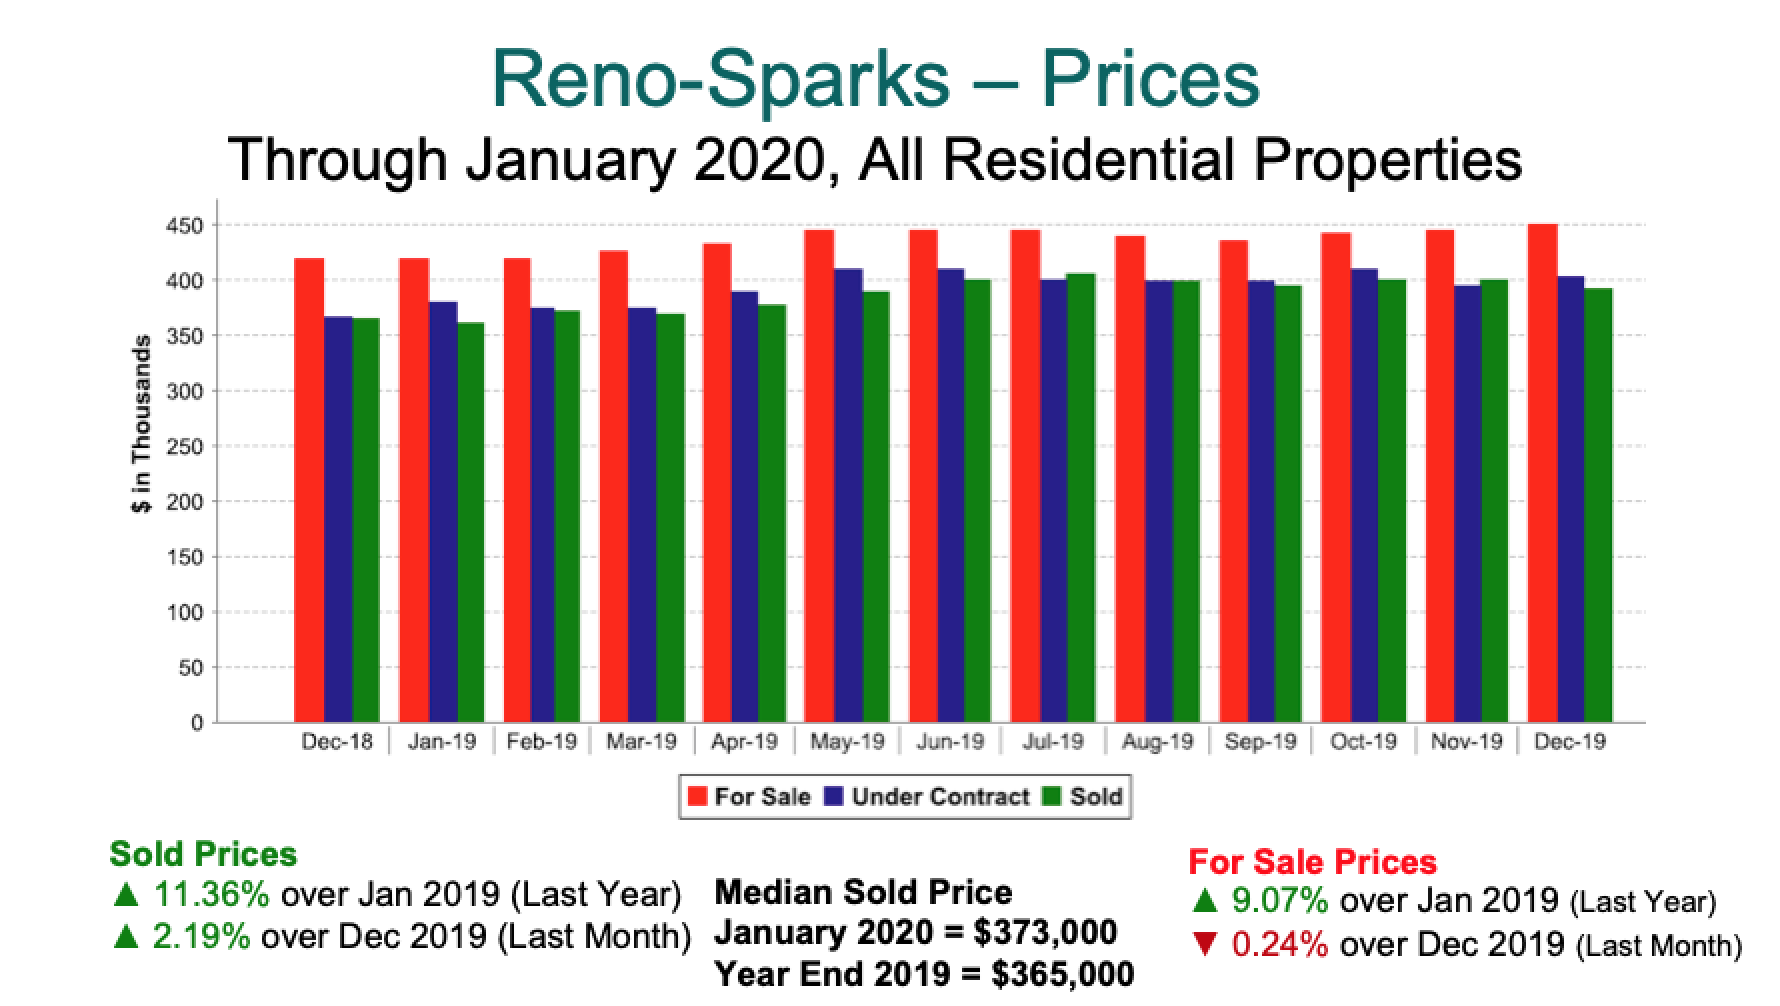 Reno Sparks Prices 2019 - Jan 2020